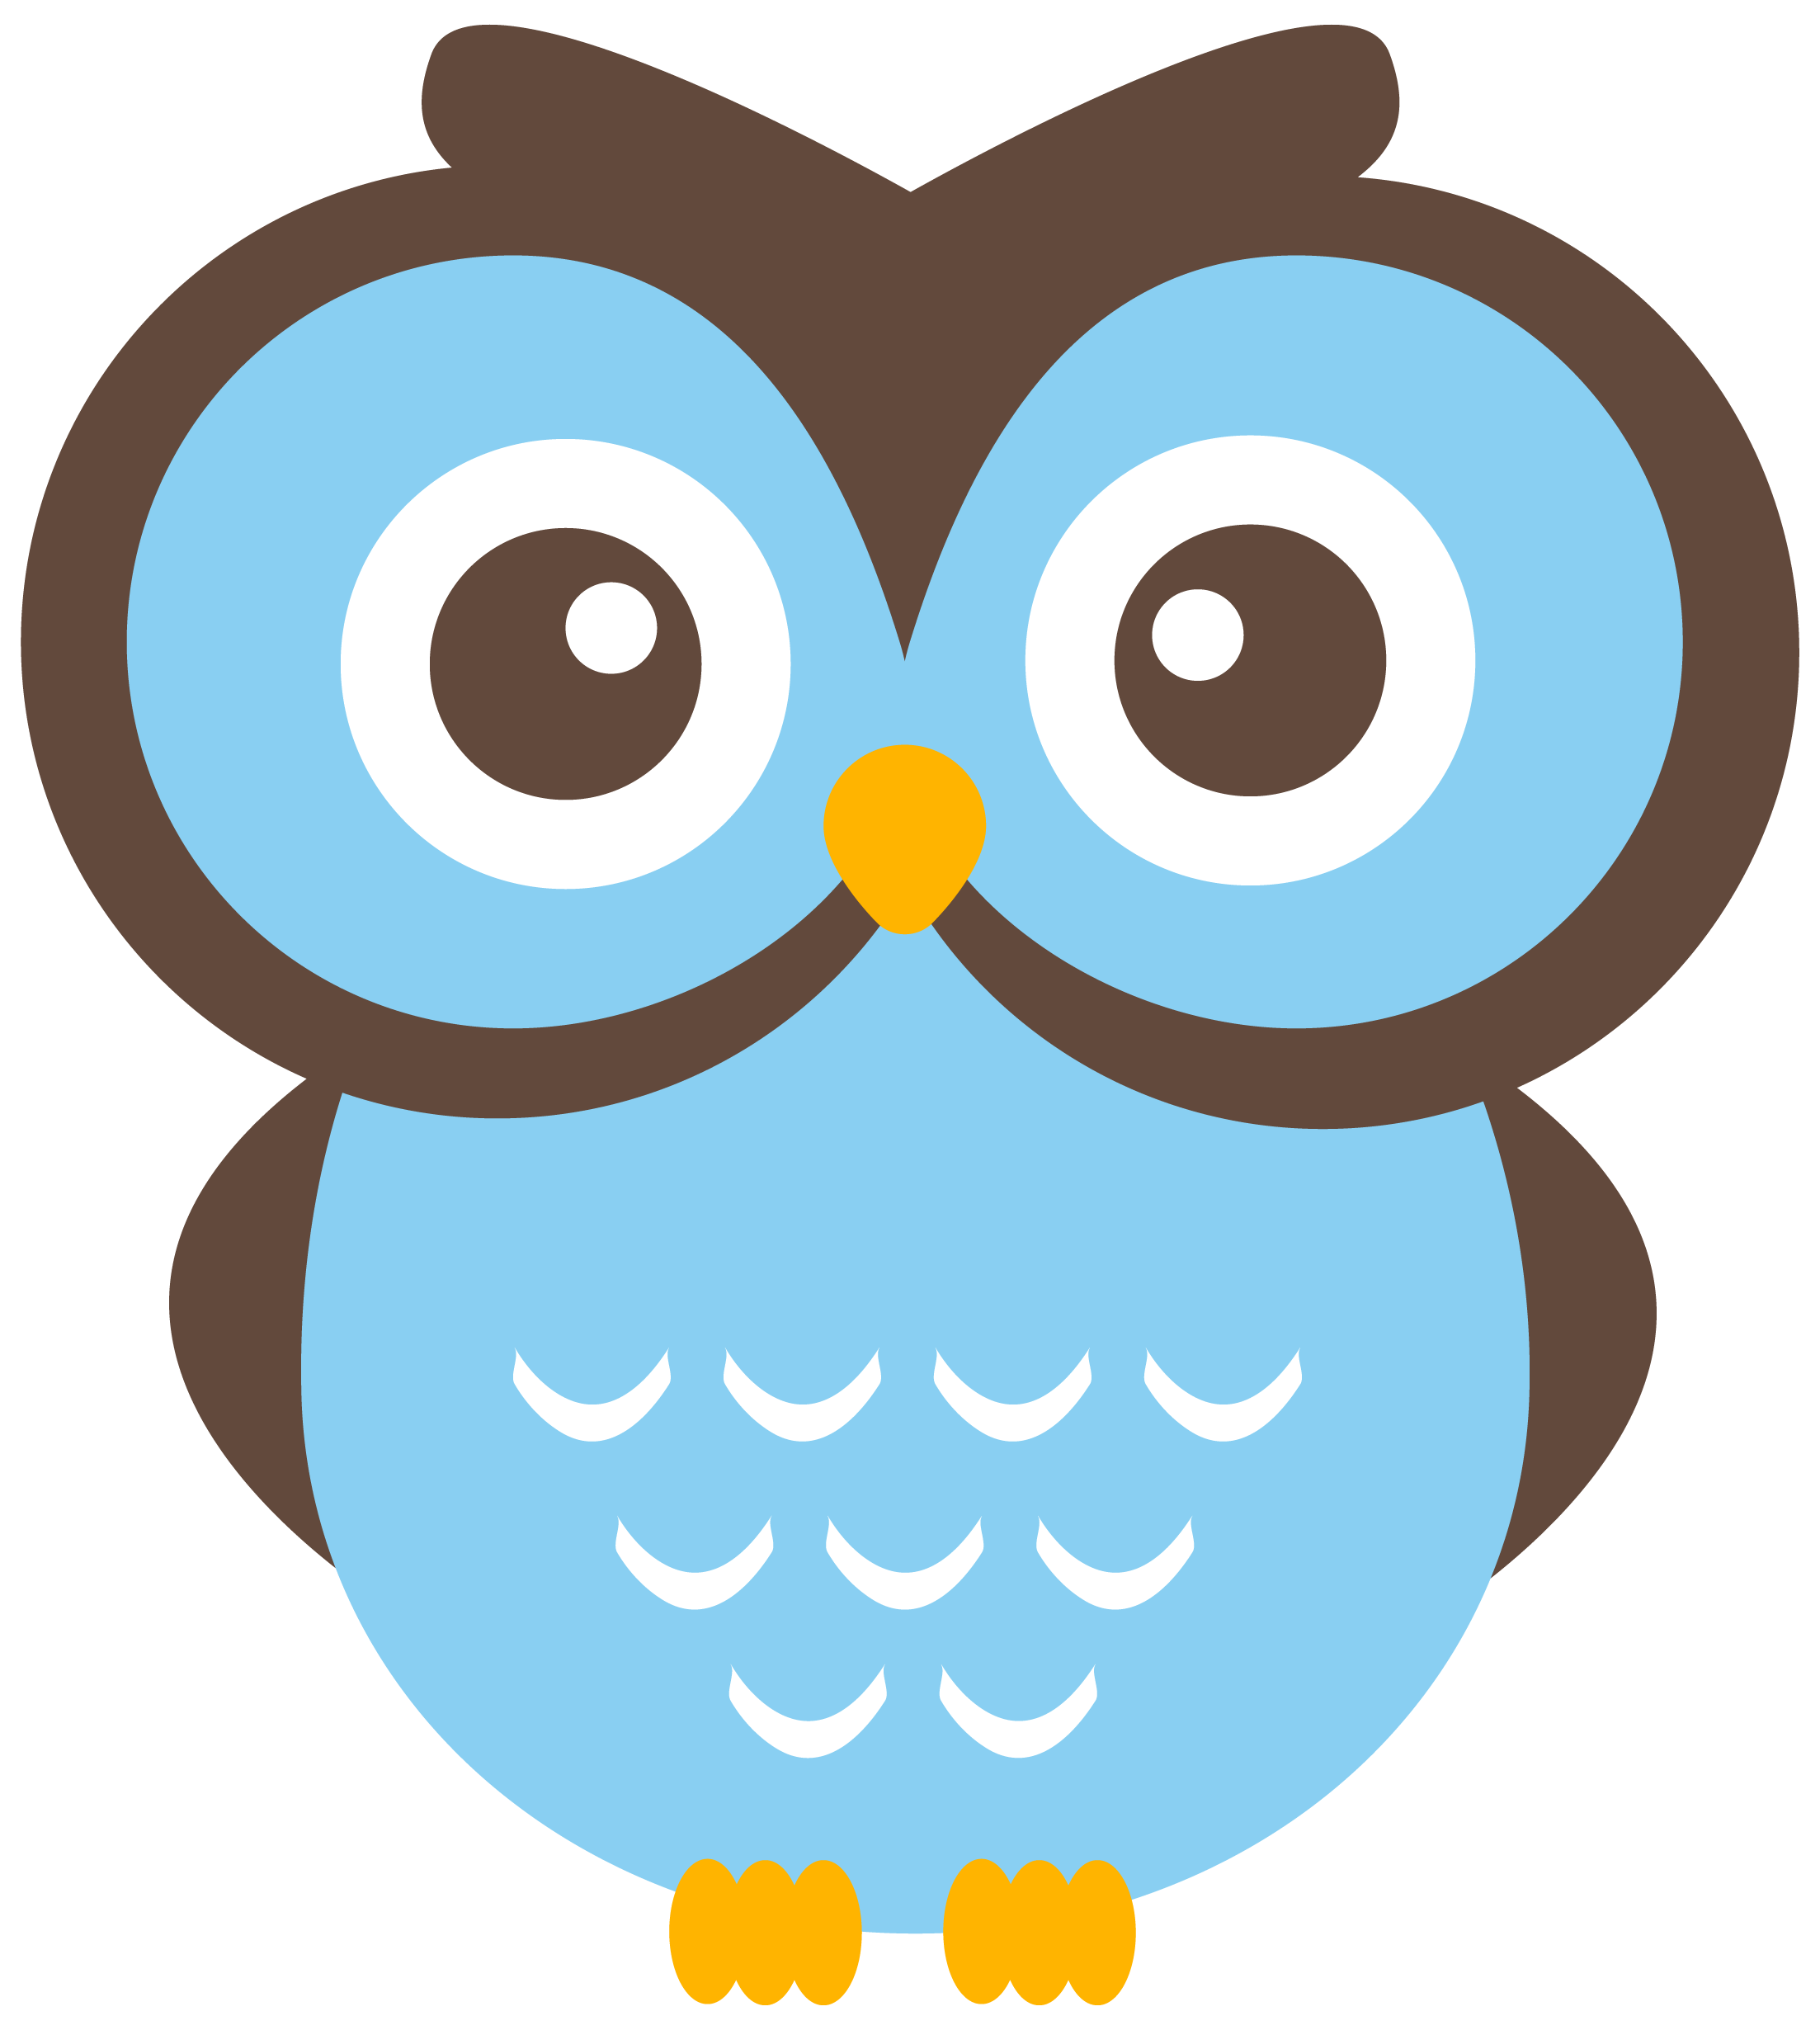 Owls on owl clip art owl and cartoon owls image 5 for A cartoon owl